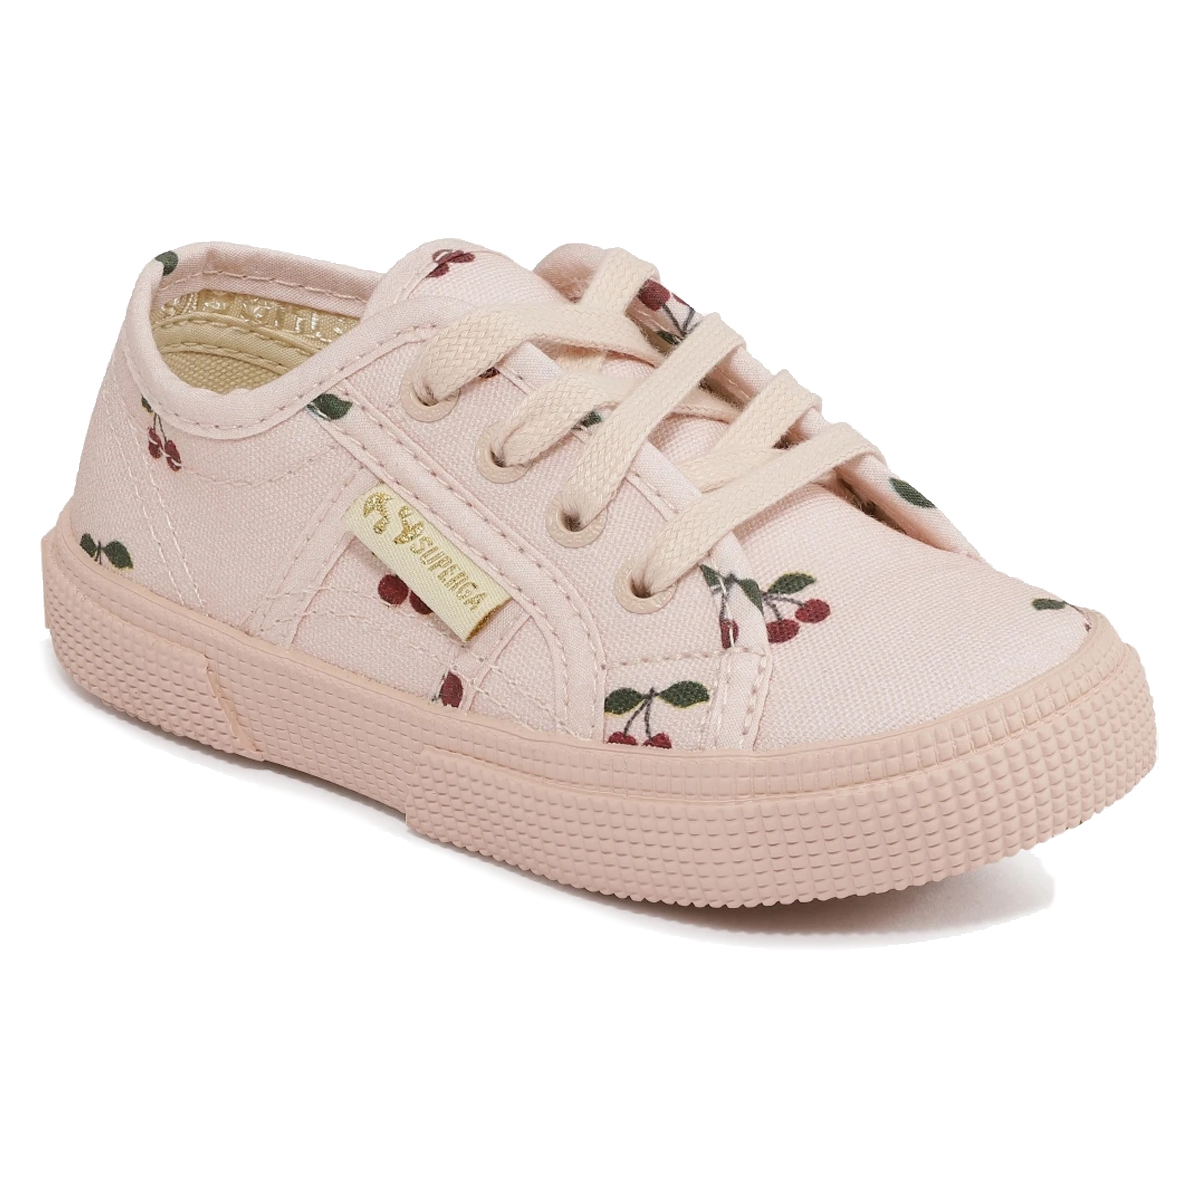 Chaussons & Chaussures Baskets Cherry - 23 Baskets Cherry - 23